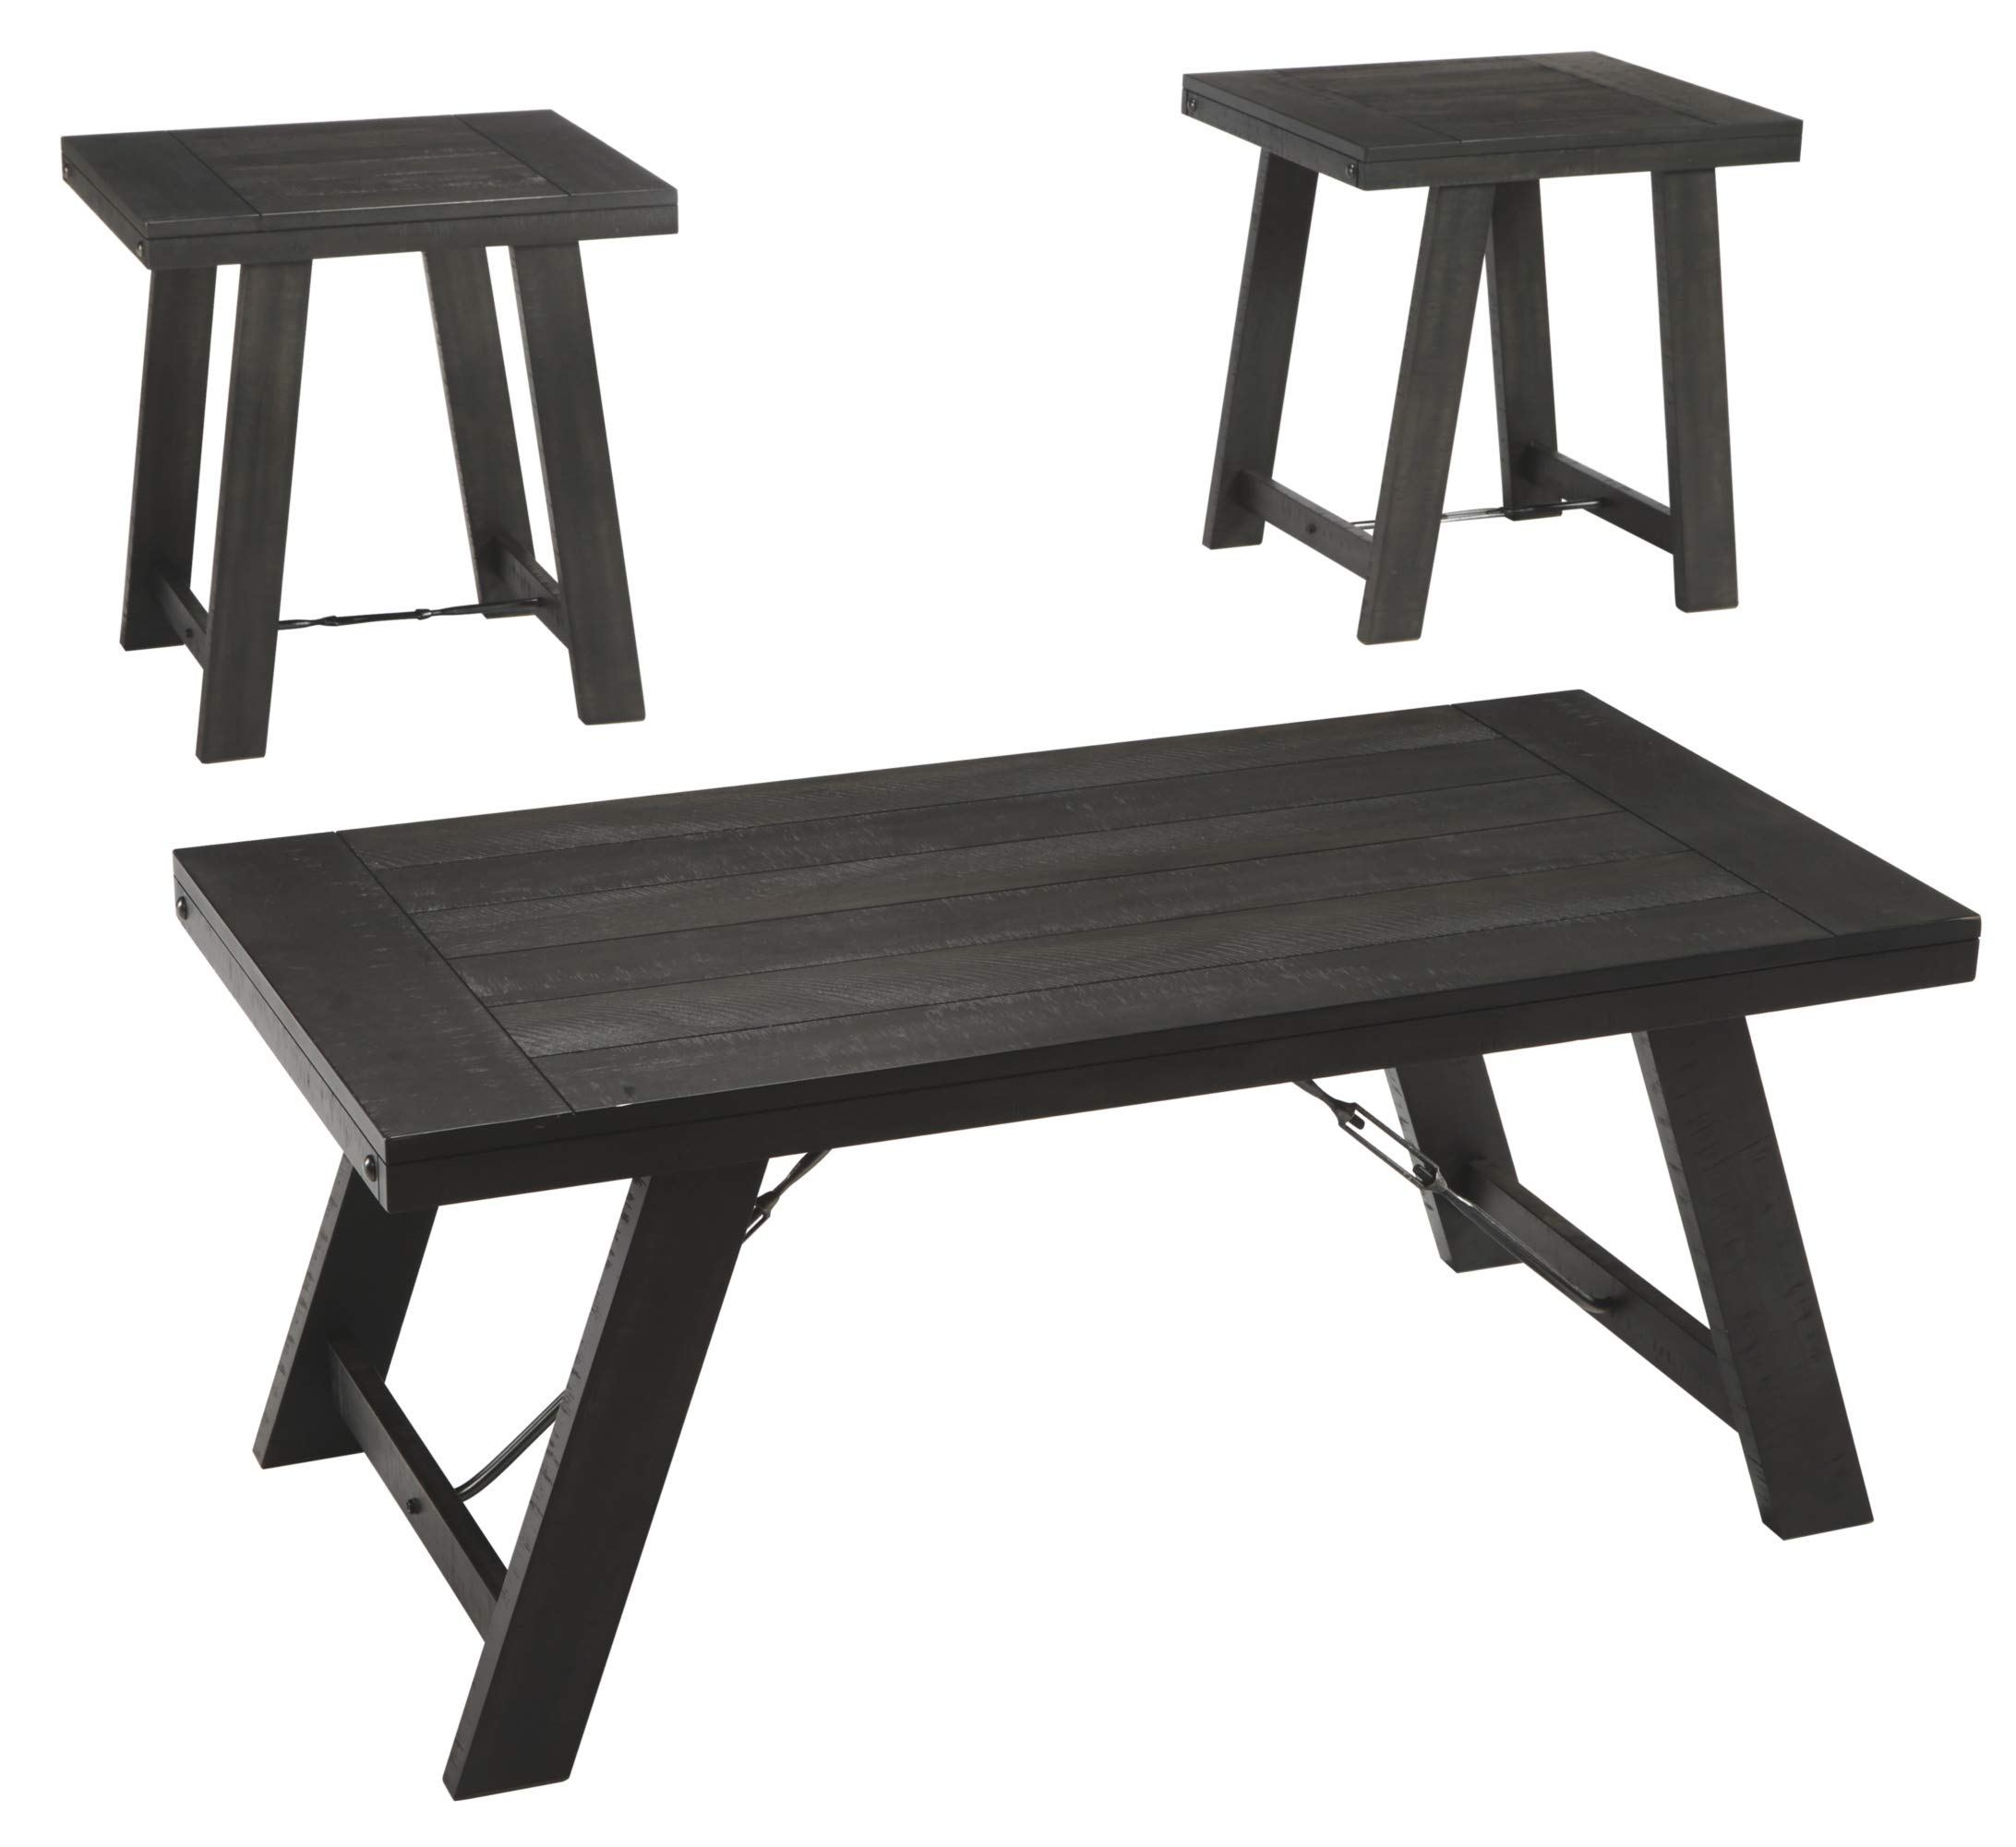 Ashley Furniture Signature Design - Noorbrook Occasional Table Set - Set of 3 - Farmhouse - Black by Signature Design by Ashley